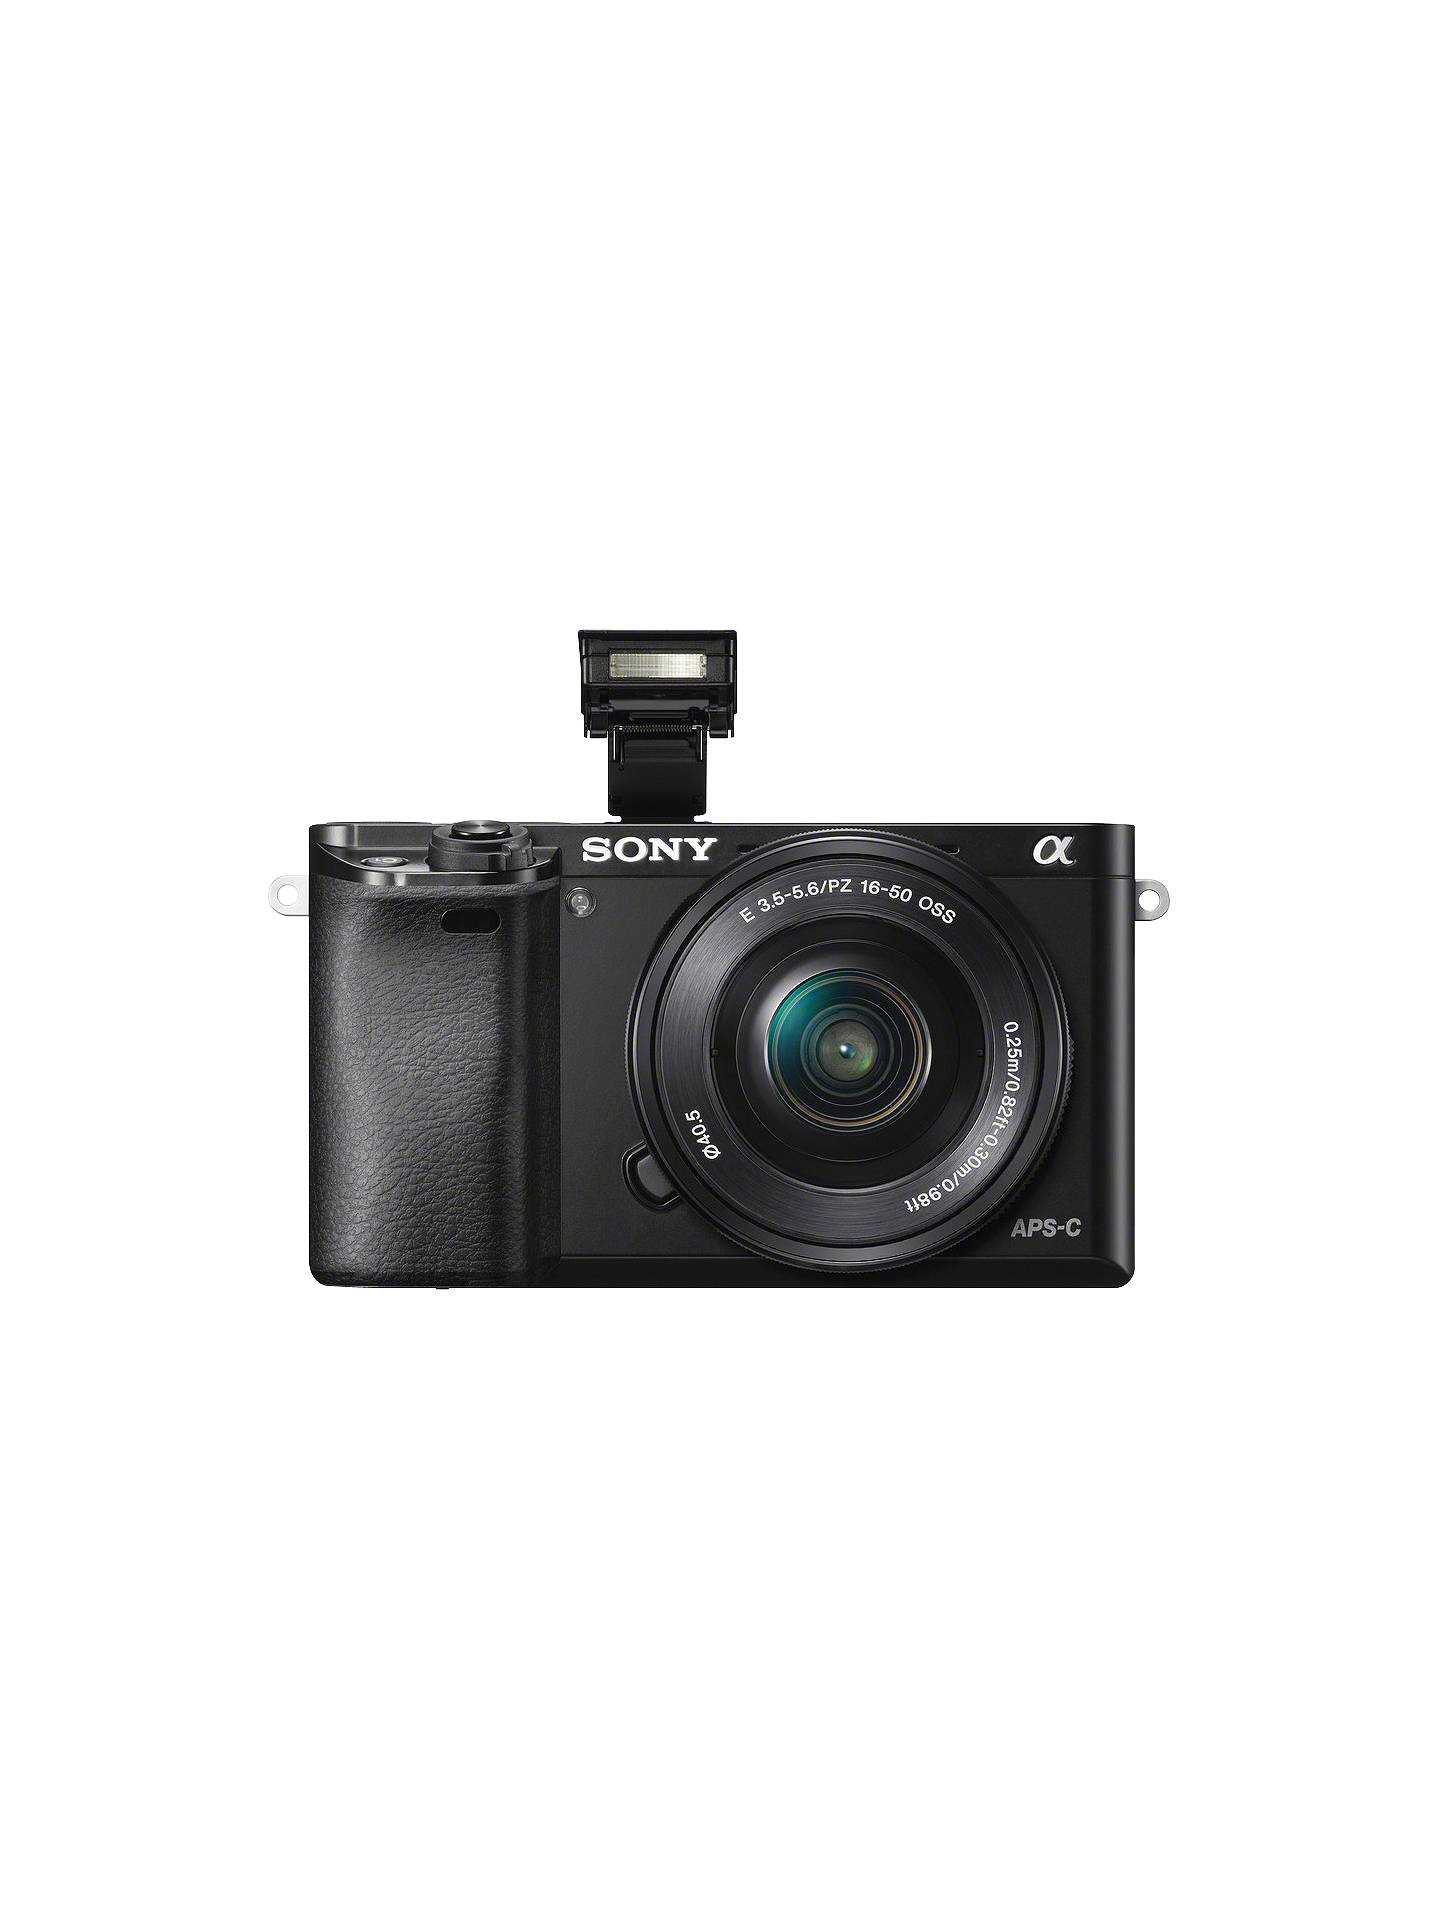 "BuySony A6000 Compact System Camera with 16-50mm OSS Lens, HD 1080p, 24.3MP, Wi-Fi, NFC, OLED EVF, 3"" Tilting Screen, Black Online at johnlewis.com"